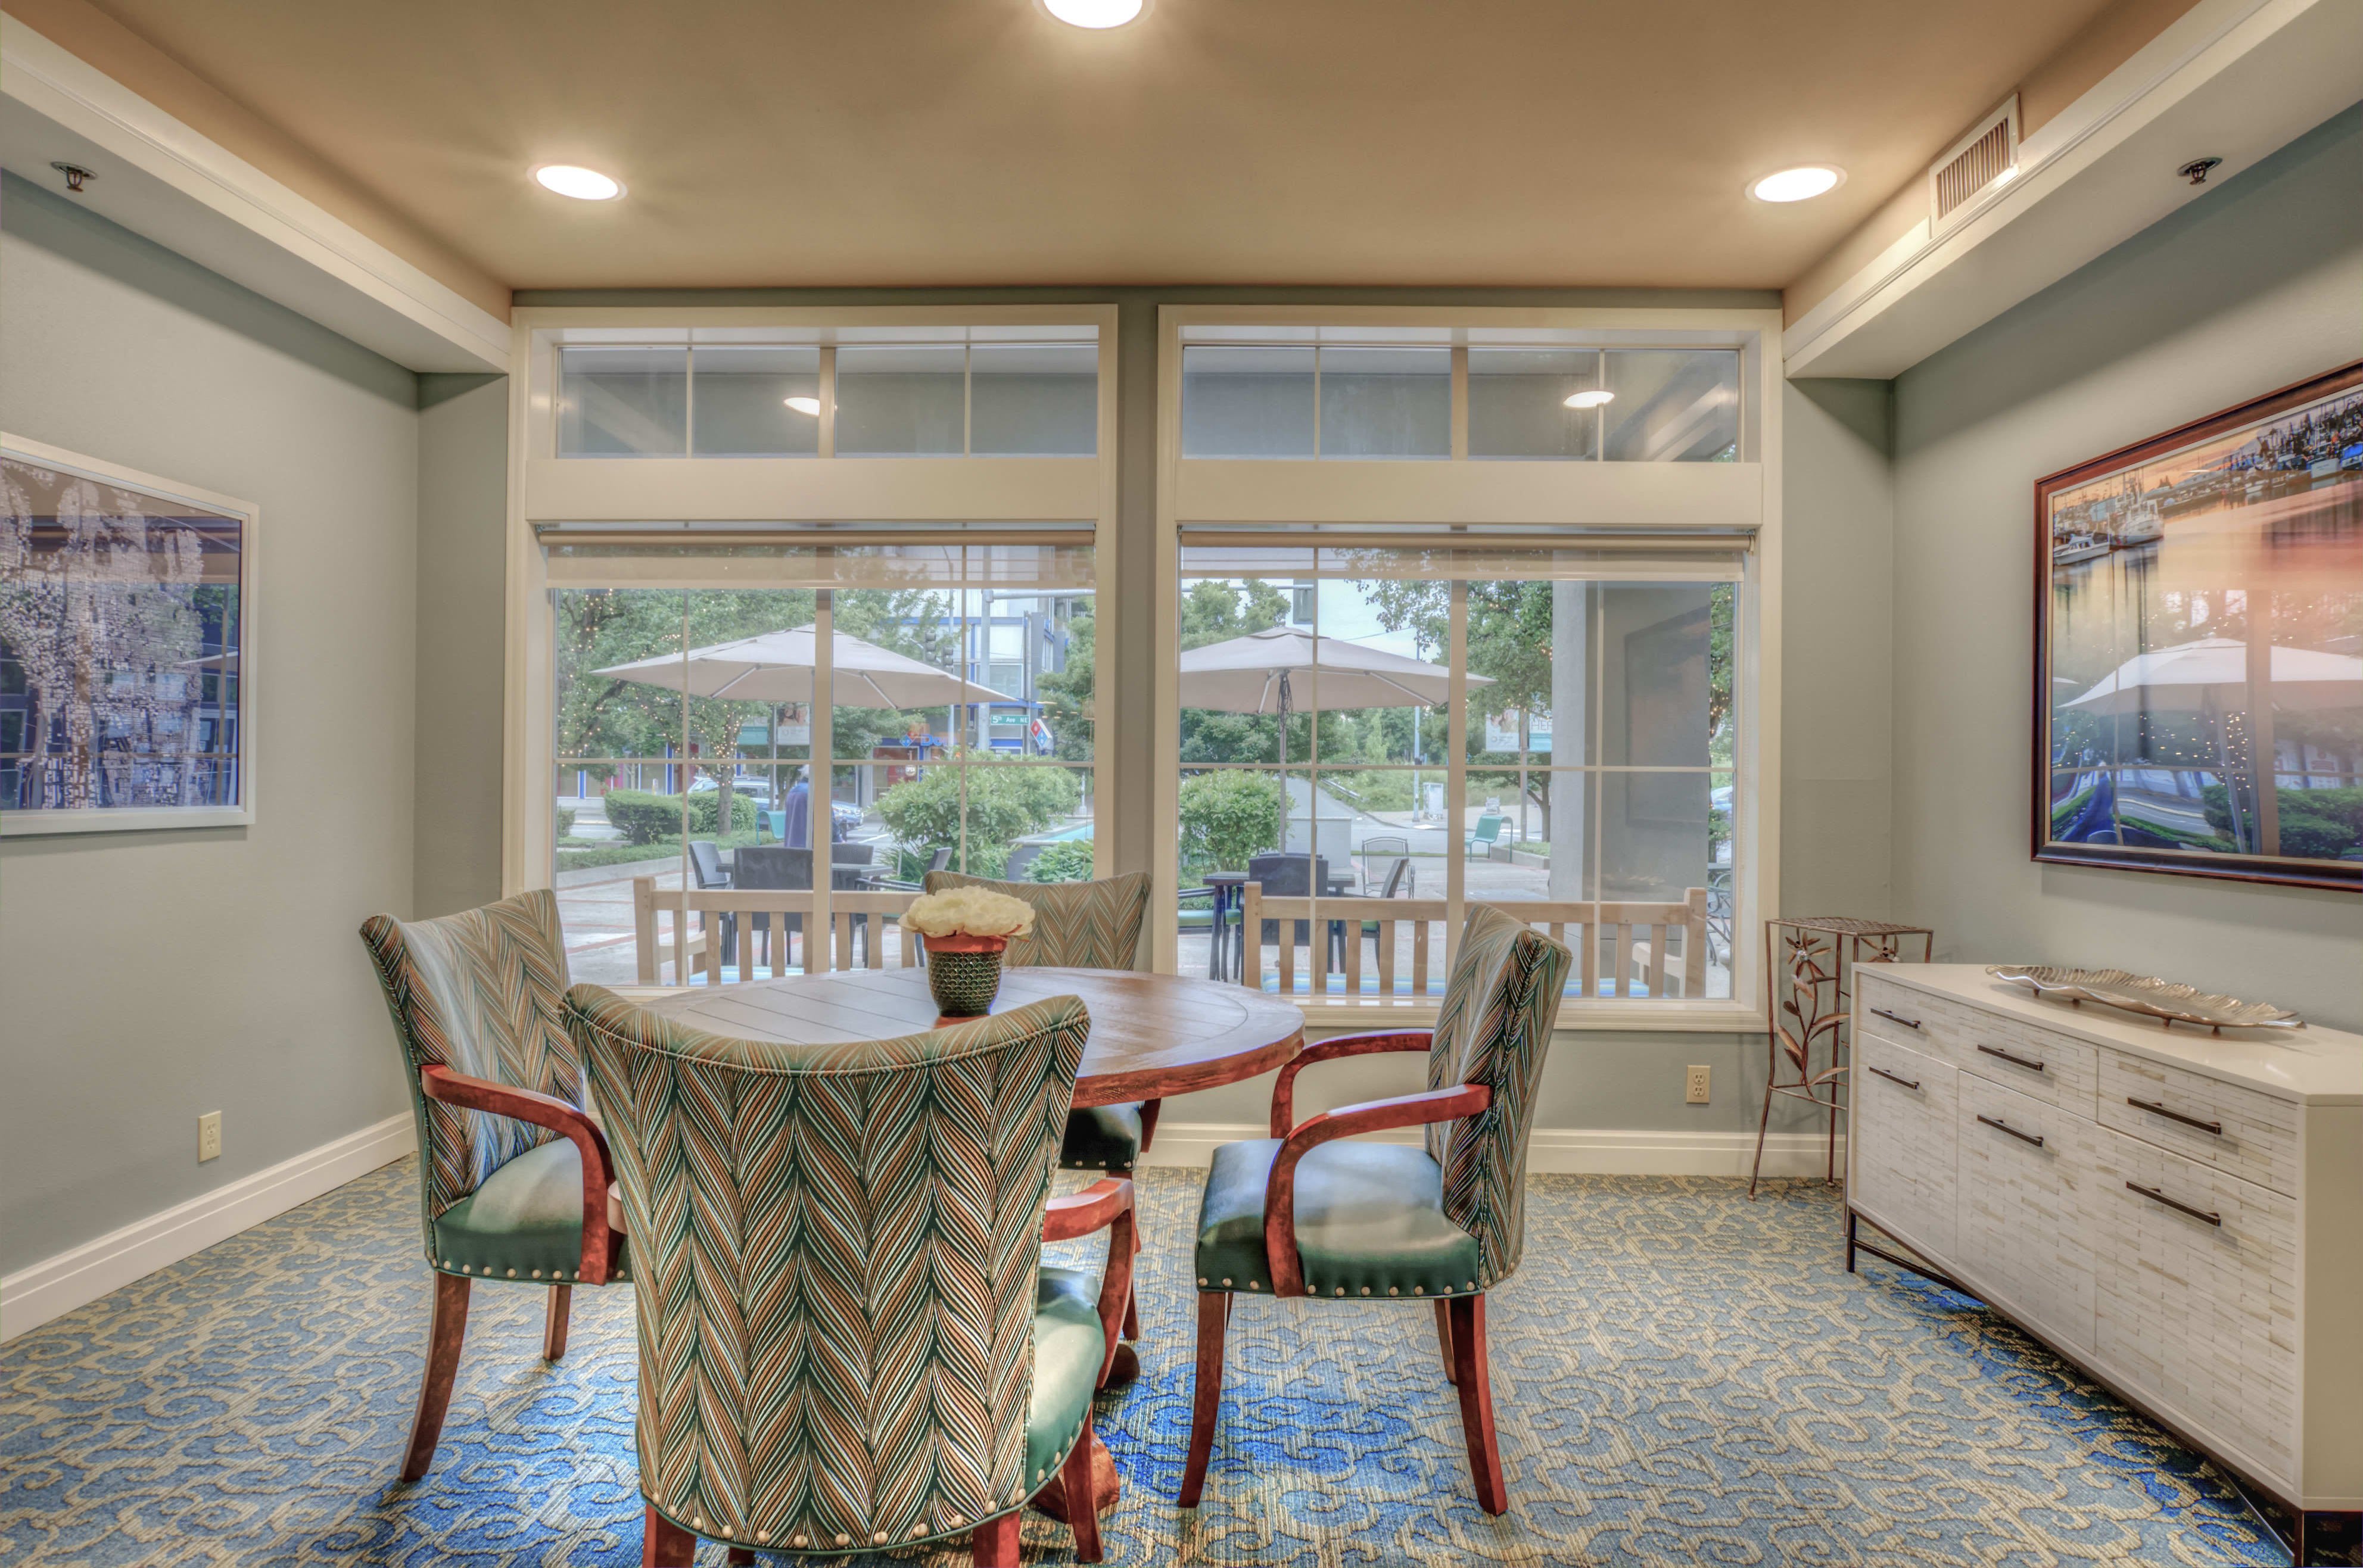 Contact the senior living community in Seattle